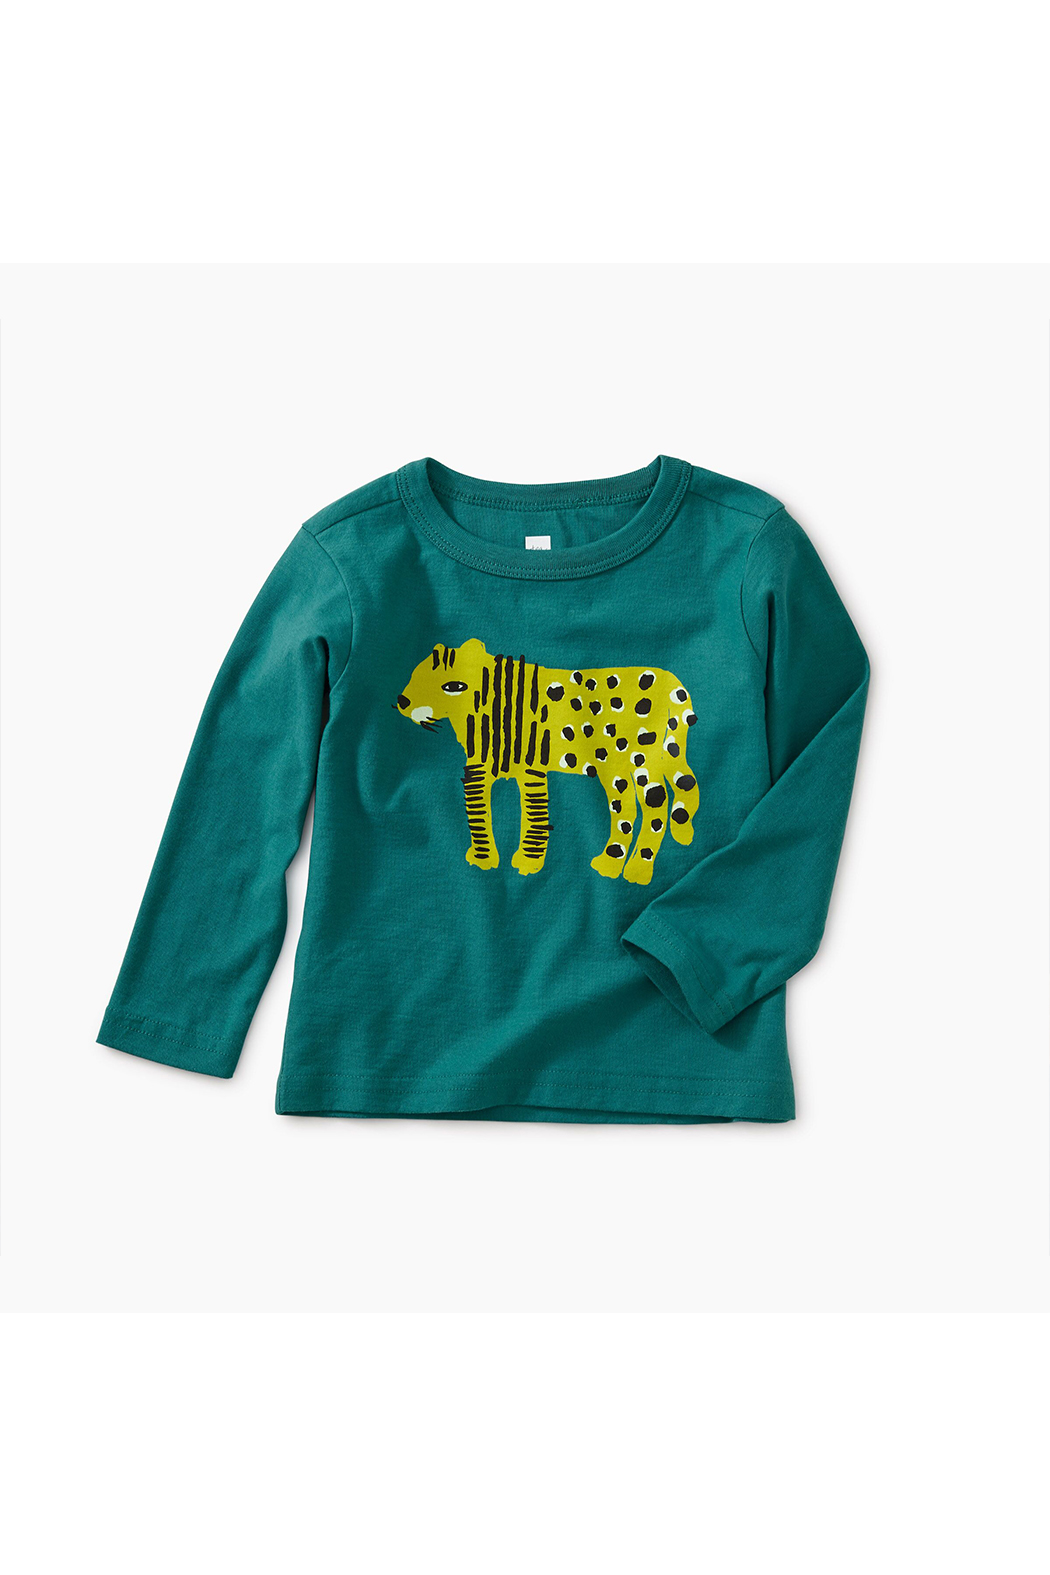 Tea Collection Liger Graphic Baby Tee - Main Image